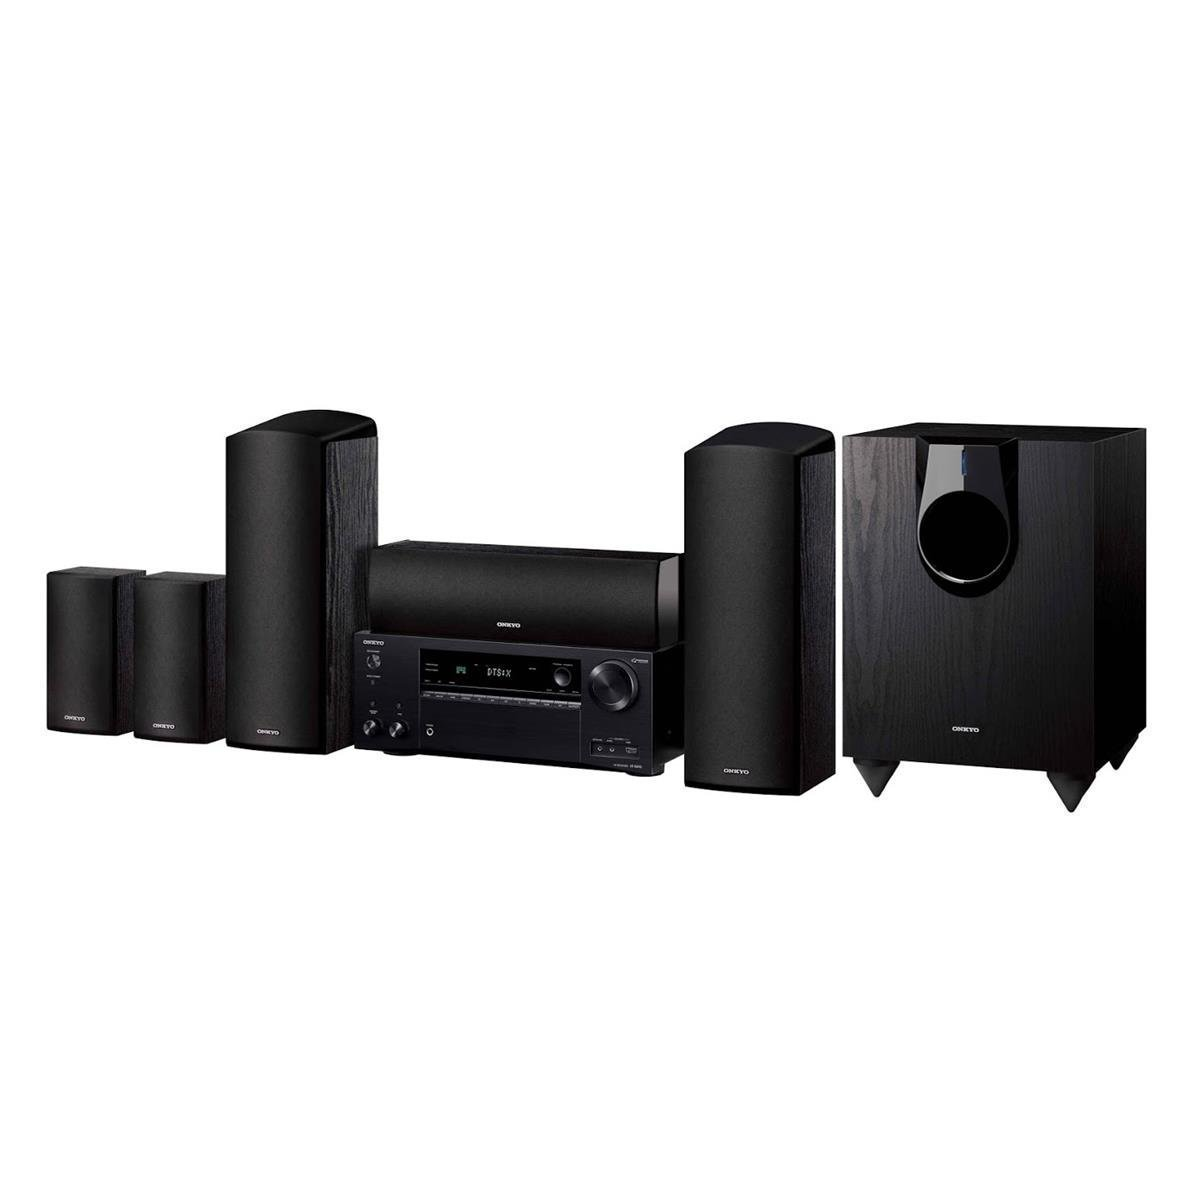 Onkyo All-in-one surround sound Home Audio/Video Product, Black (HT-S7800)